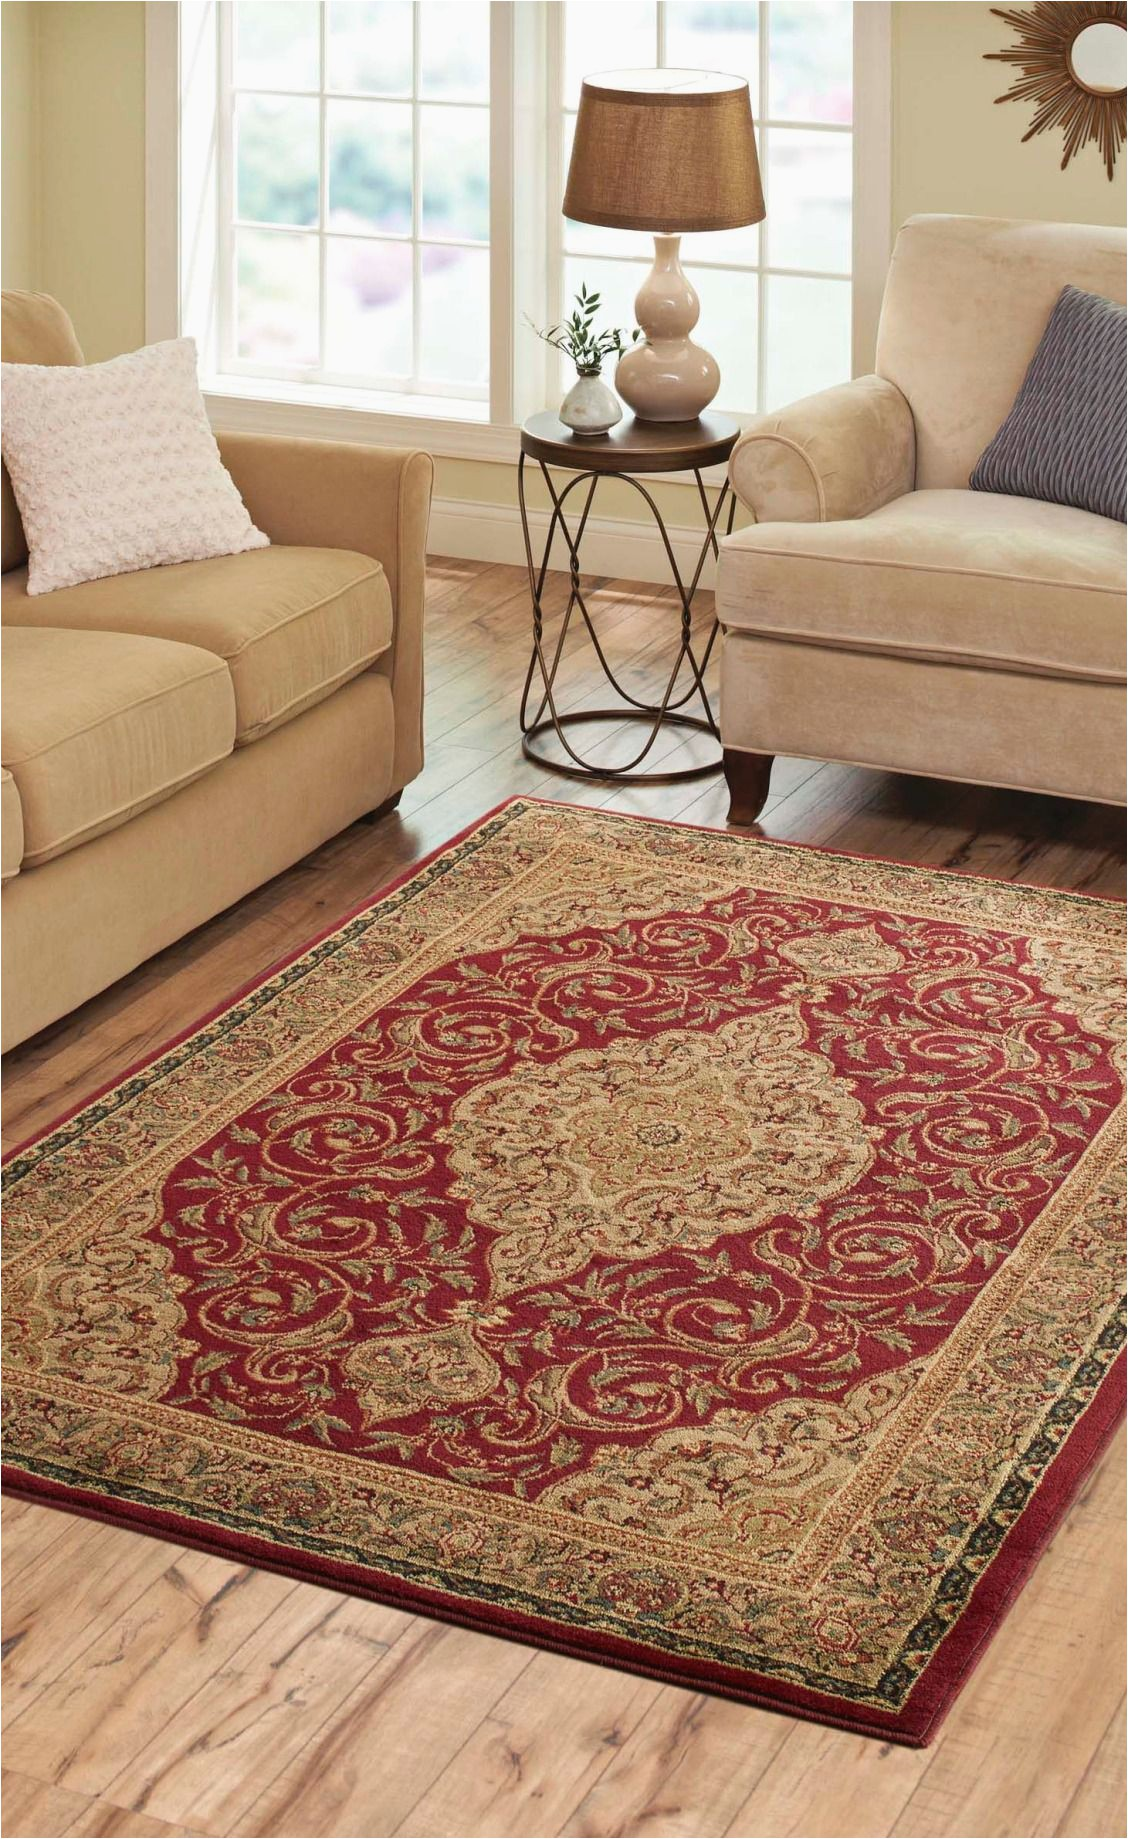 Better Homes and Gardens Gina area Rug Better Homes and Gardens Gina area Rug